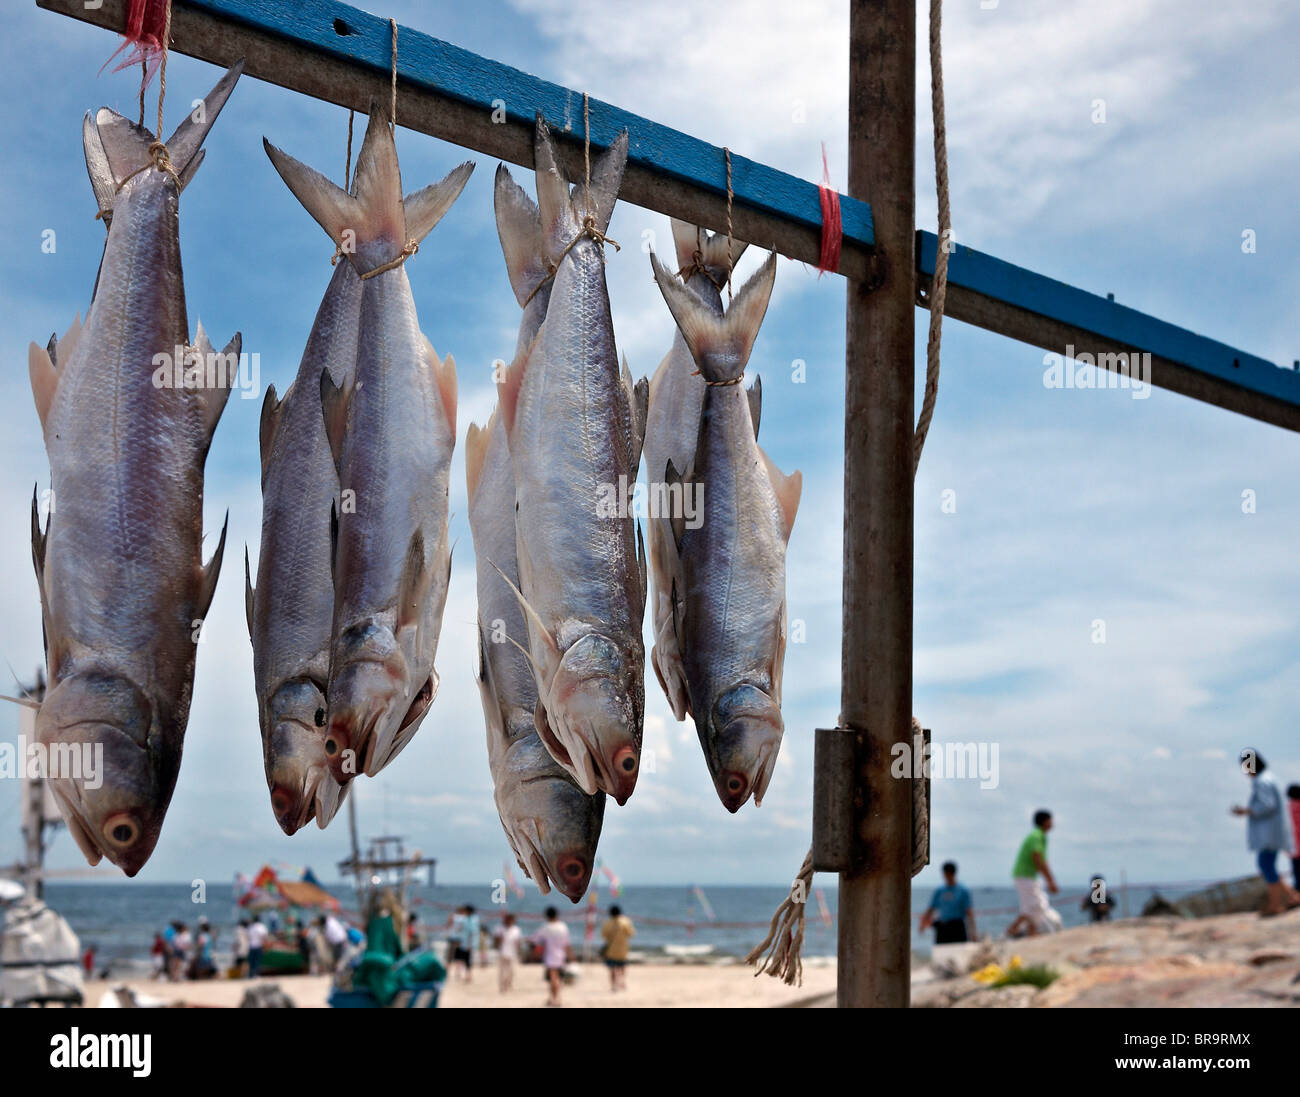 Daily catch of fresh fish hanging out to dry from a for Daily fresh fish